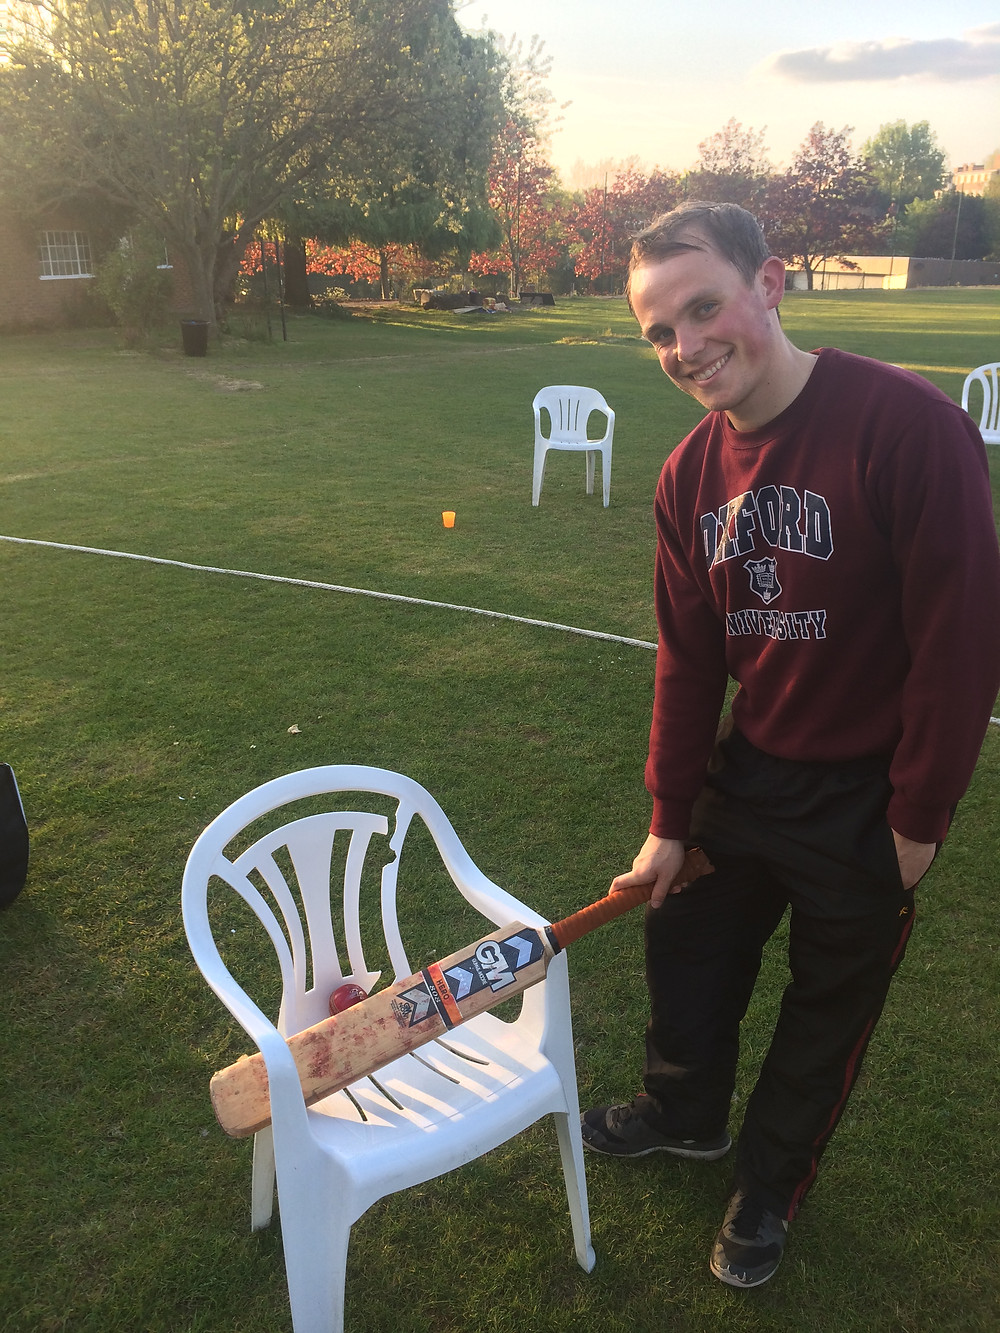 Noah Hillyard and the chair broken by his six that effectively sealed victory at Streatham & Marlborough